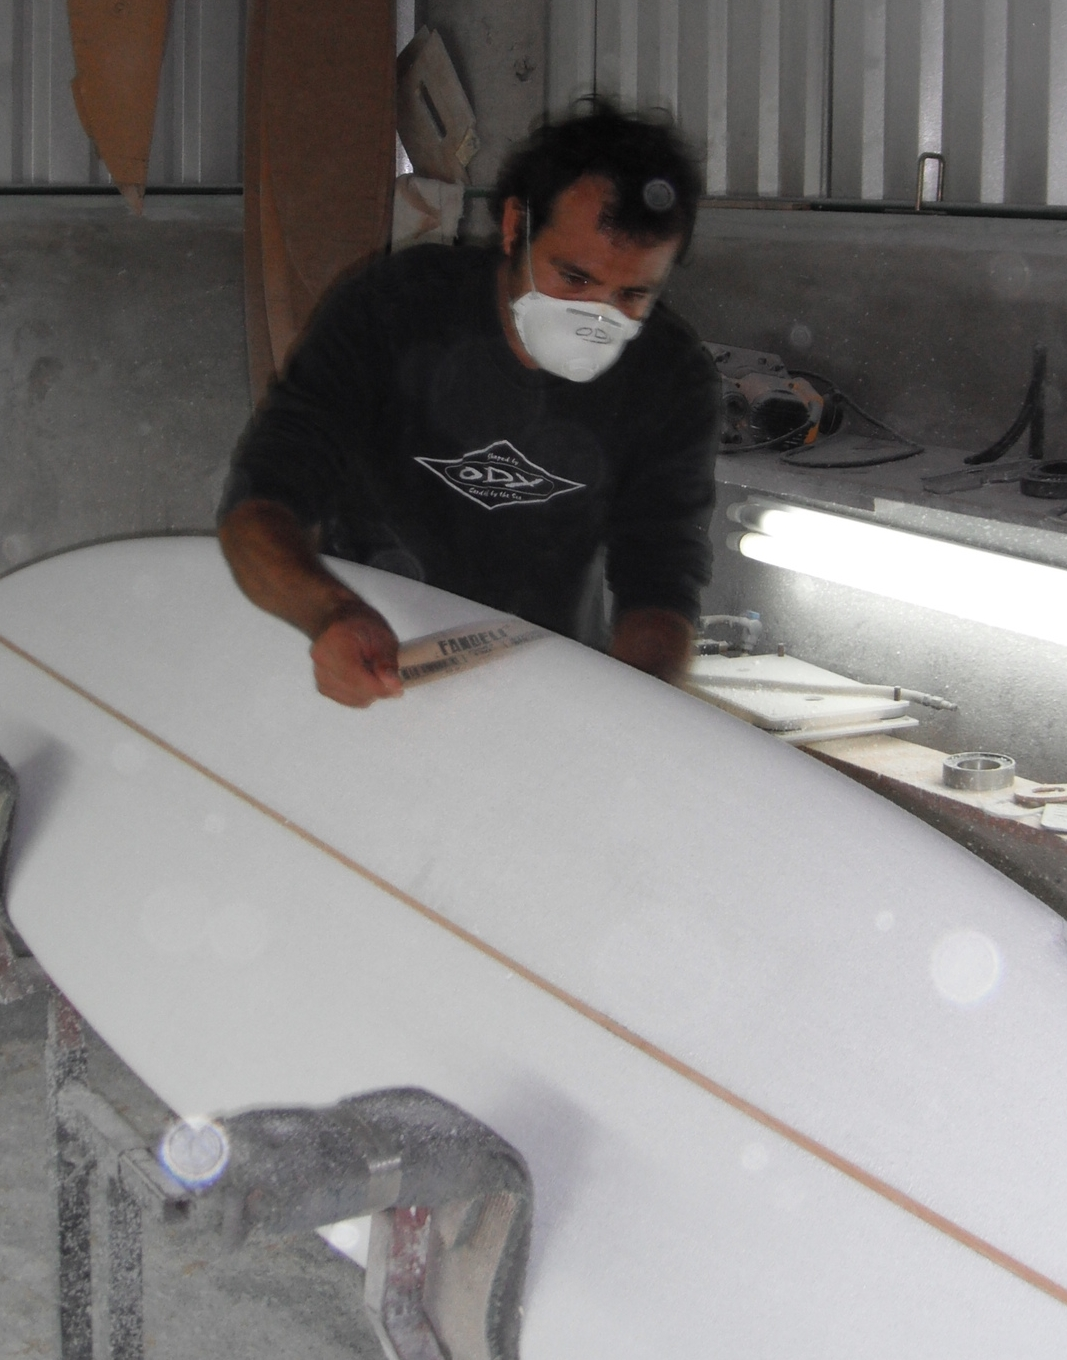 Ody Ordaz in his shaping bay.